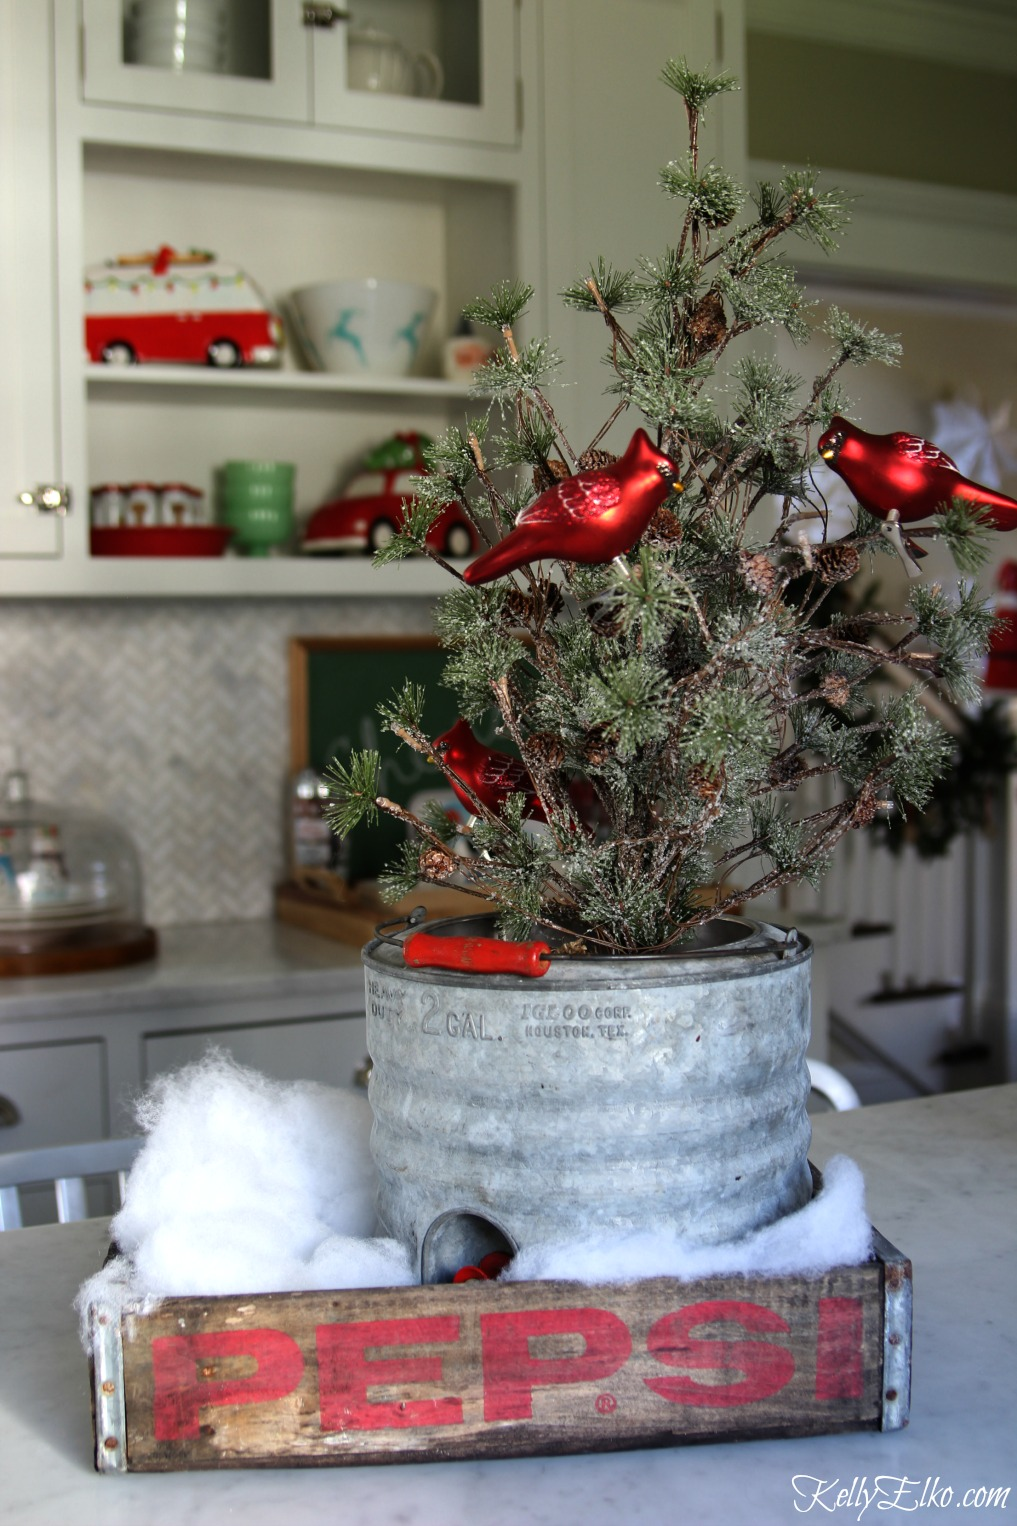 Vintage Pepsi crate makes a fun tray for Christmas and I love the old galvanized cooler with mini tree kellyelko.com